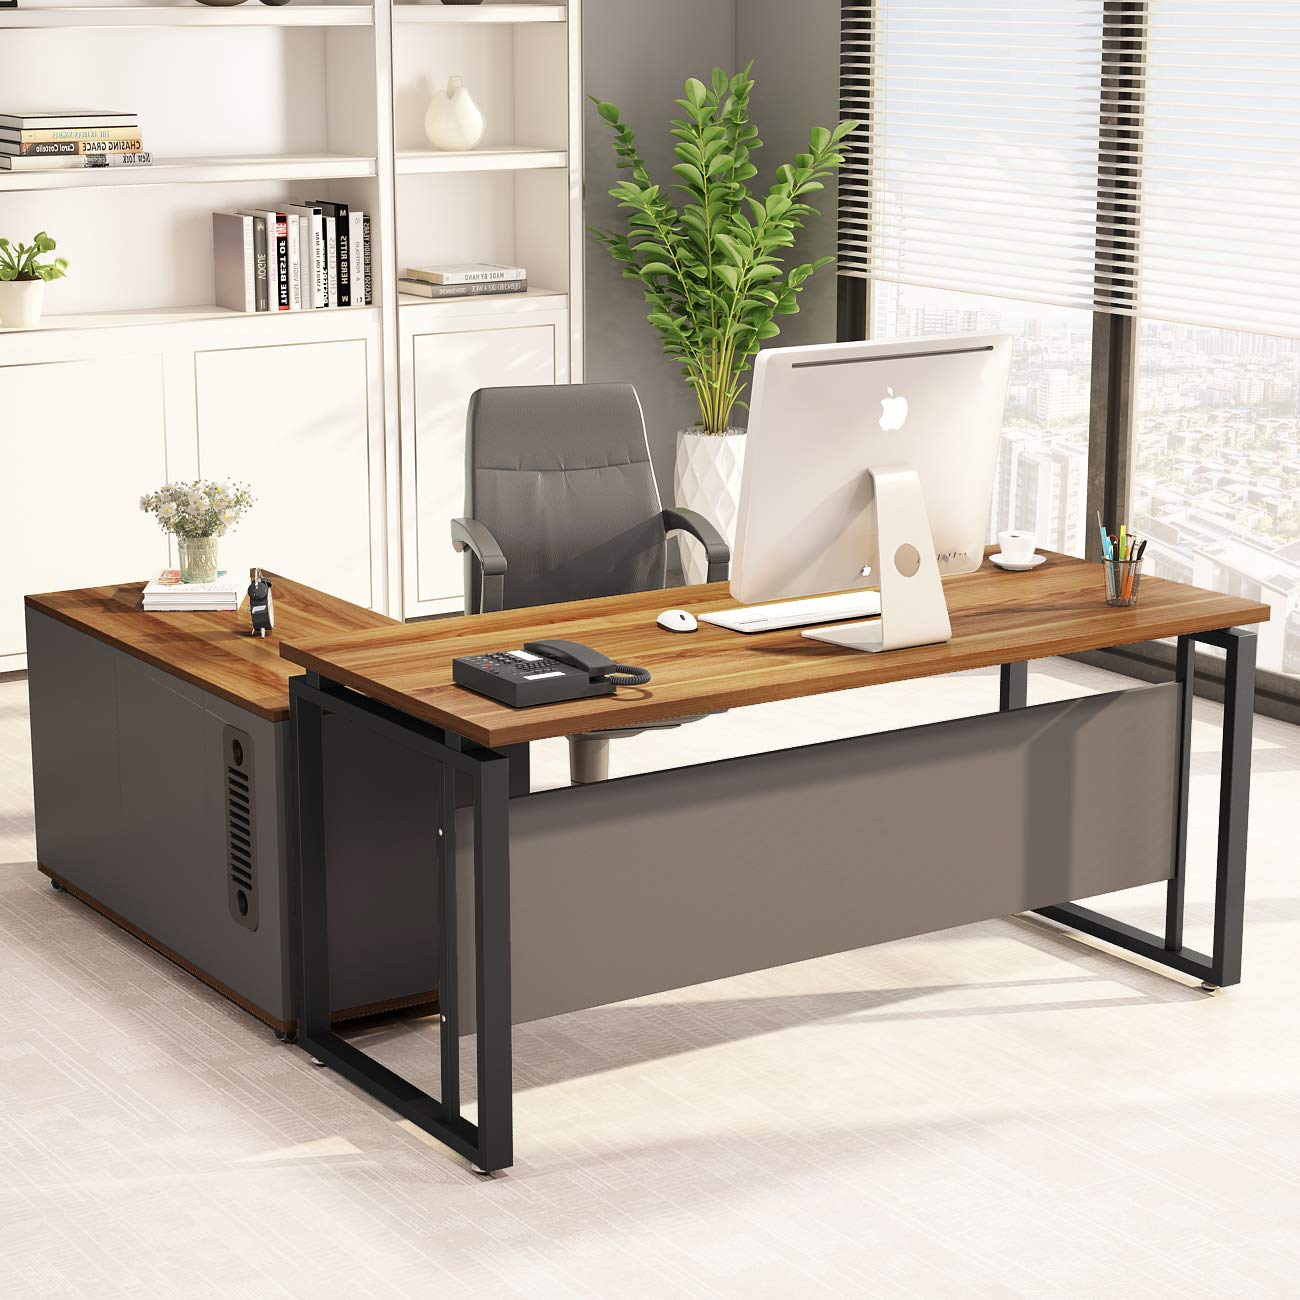 LITTLE TREE L-Shaped Computer Desk, 55'' Executive Desk Business Furniture with 39'' File Cabinet Storage Mobile Printer Filing Stand for Office Dark Walnut by LITTLE TREE